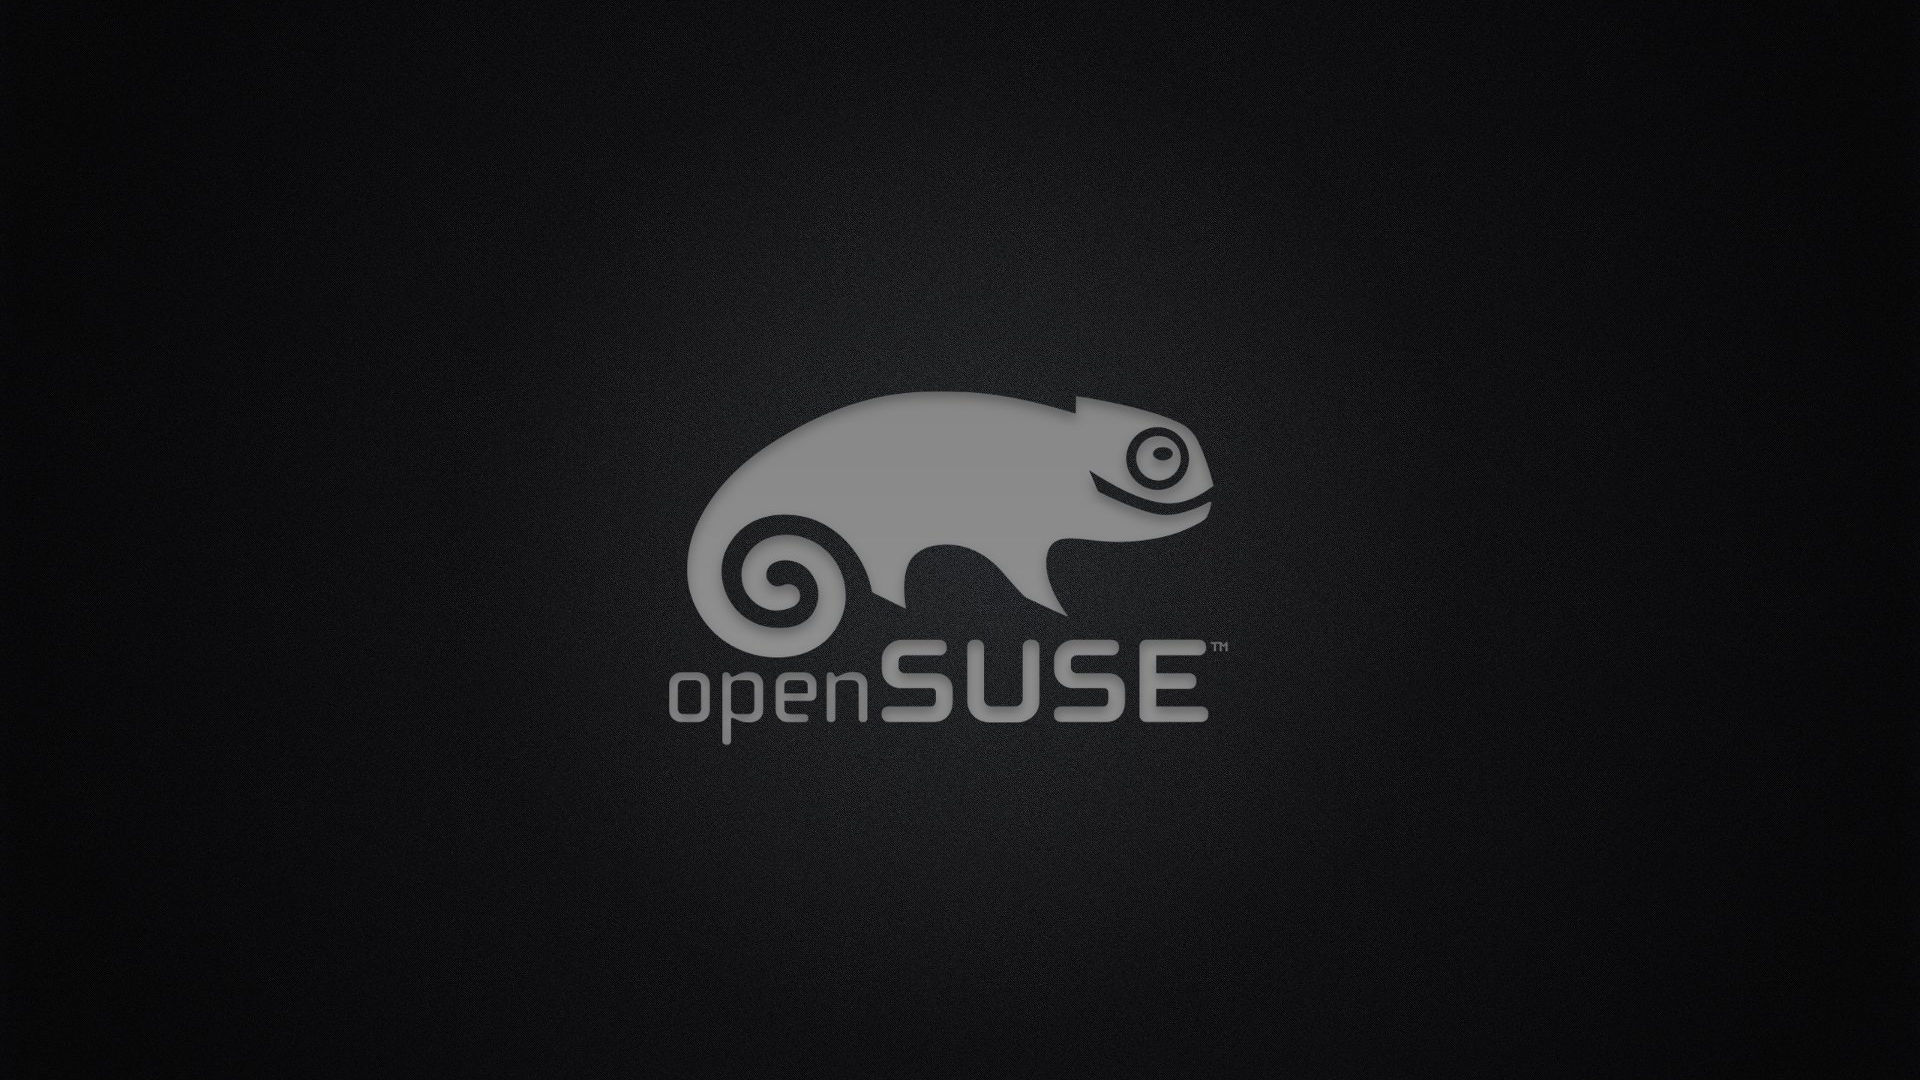 opensuse su windows